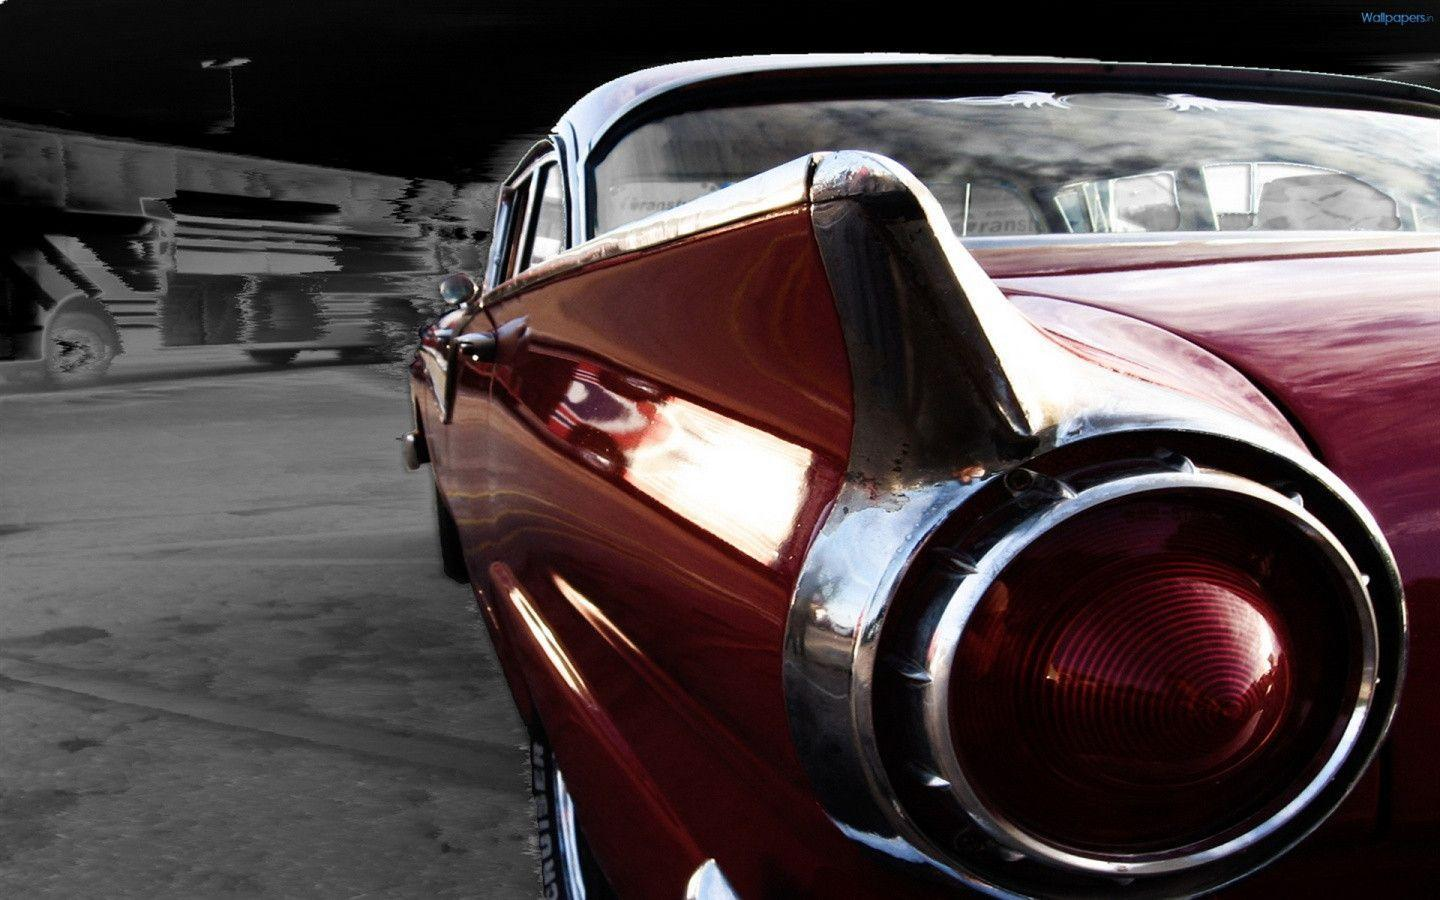 Old car wallpapers wallpaper cave - Cars hd wallpapers for laptop ...